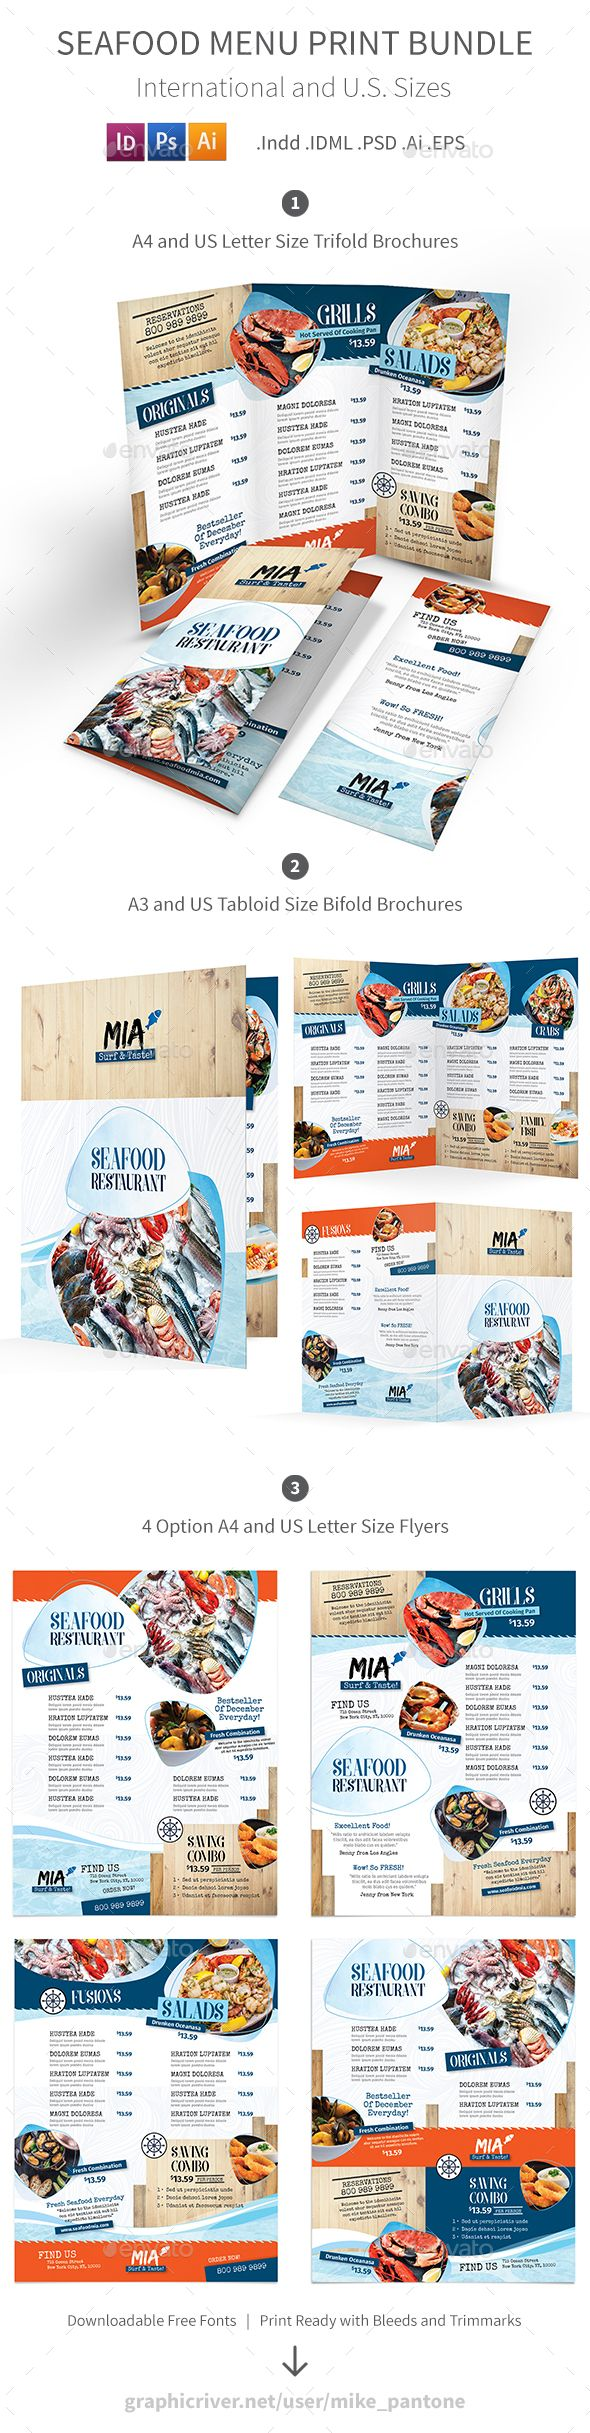 Seafood Restaurant Menu Print Bundle 3 #eat #lobster • Download ➝ https://graphicriver.net/item/seafood-restaurant-menu-print-bundle-3/21282361?ref=pxcr